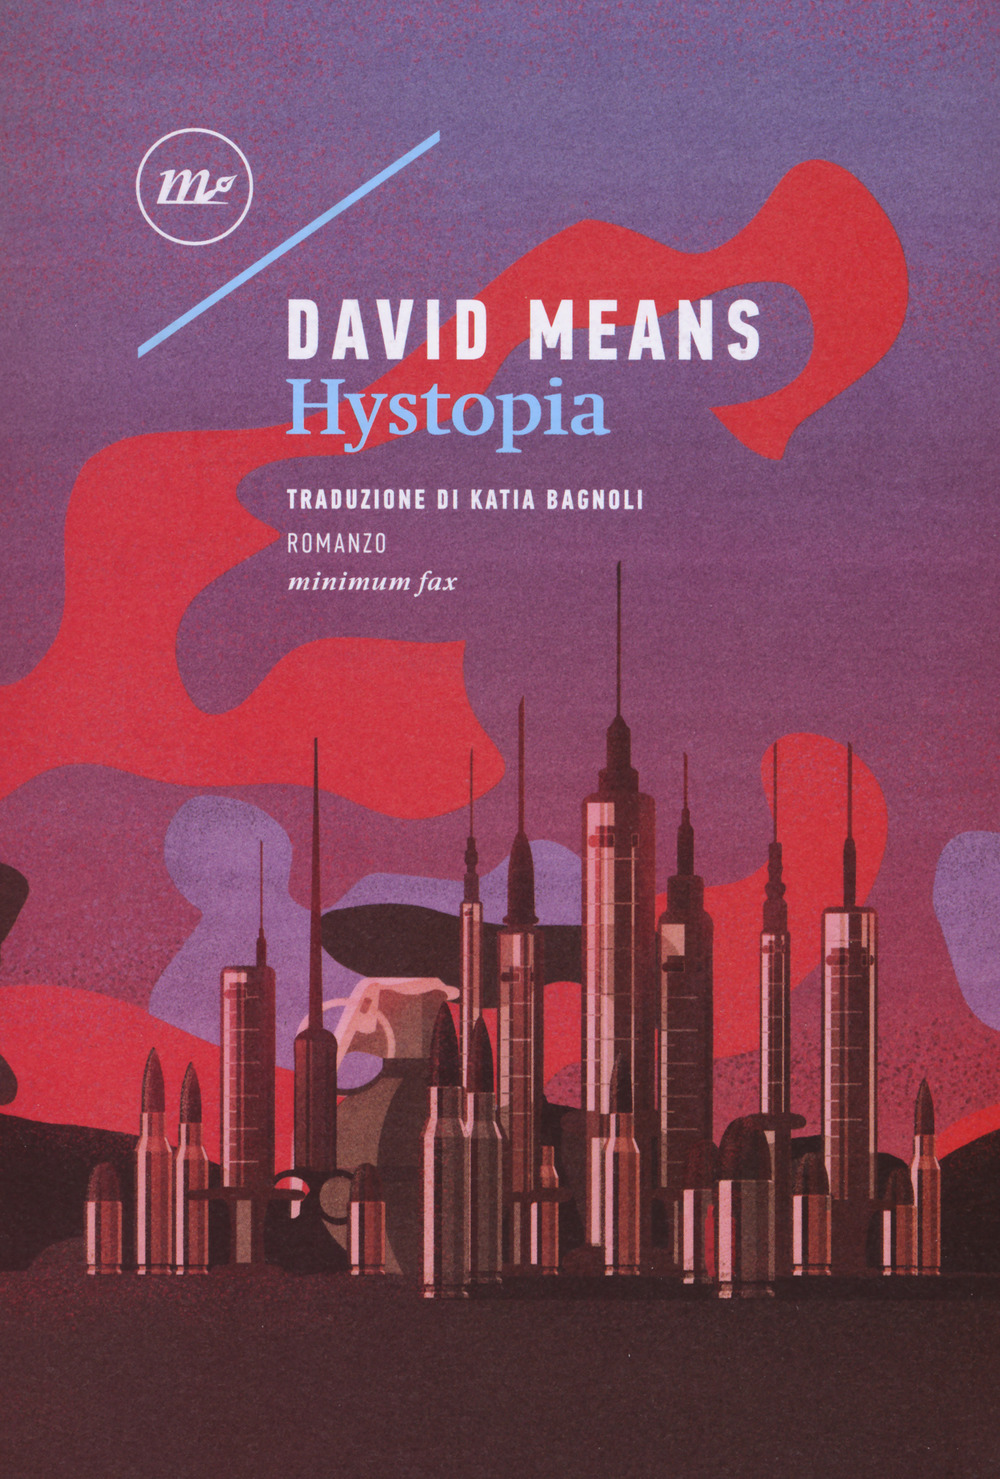 David Means – Hystopia